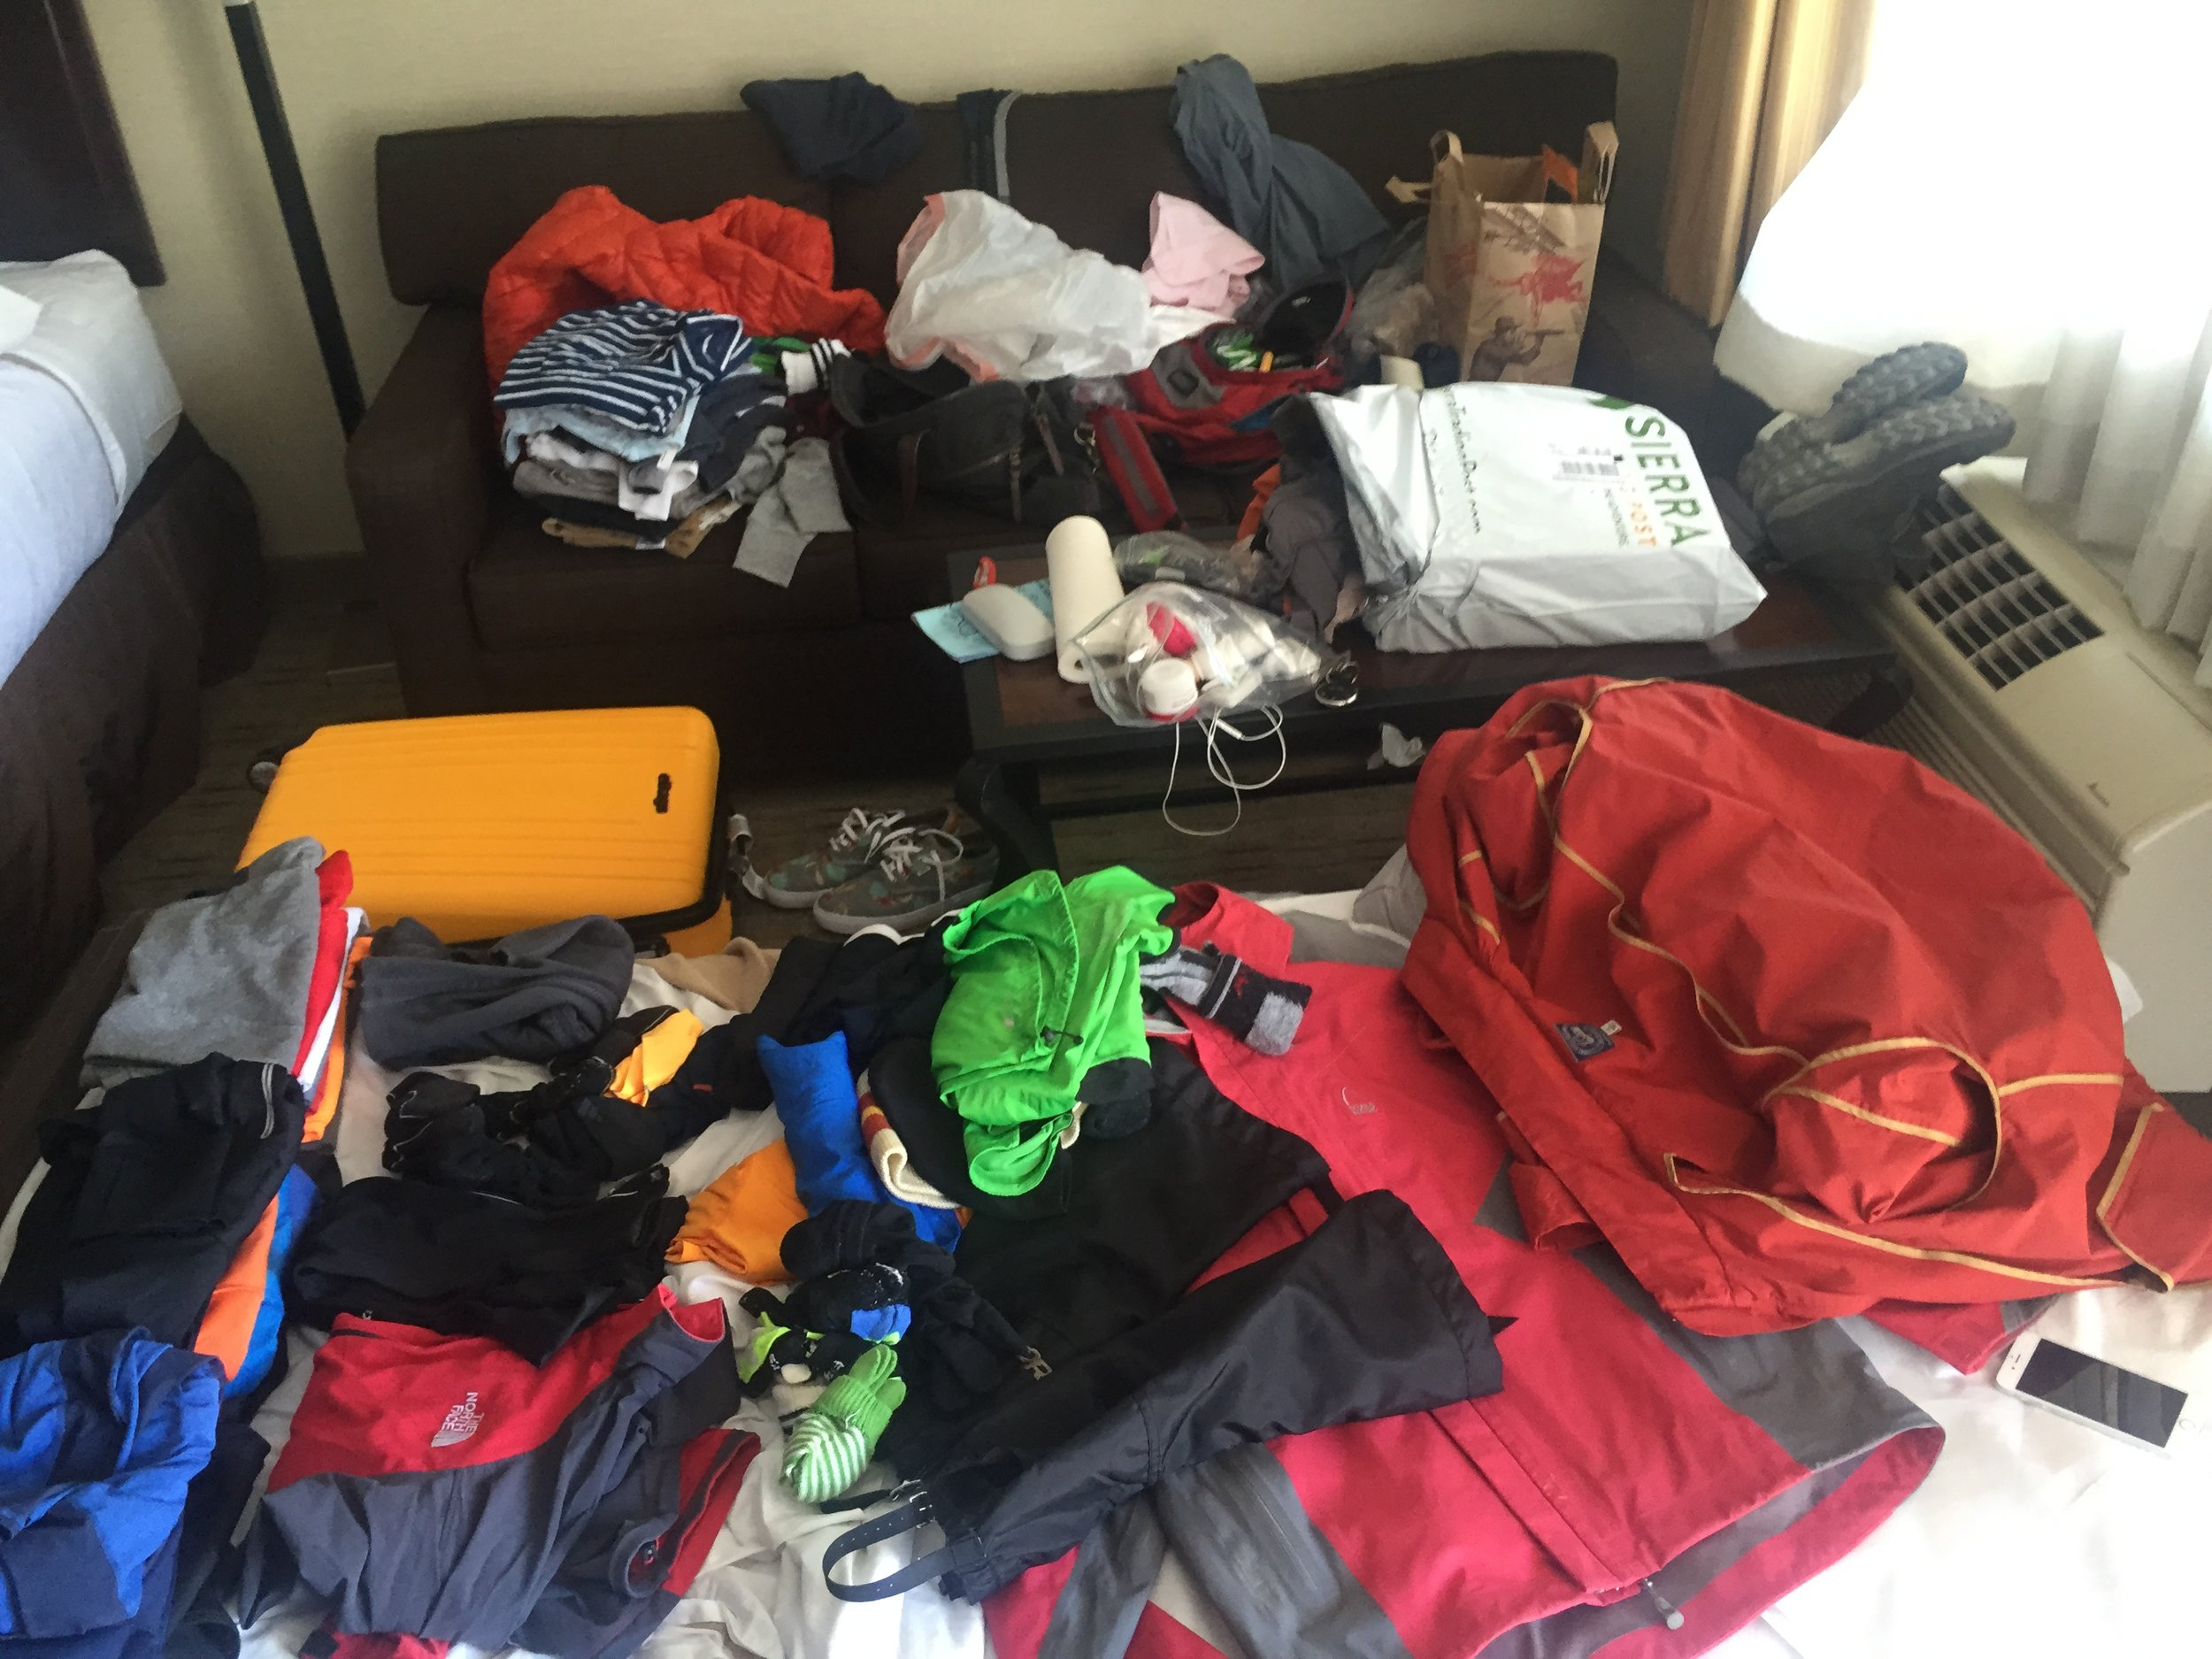 Some of the stuff we packed. We overpacked by a lot. If you're going for a day summit, heavily consider what to bring and what to leave behind.